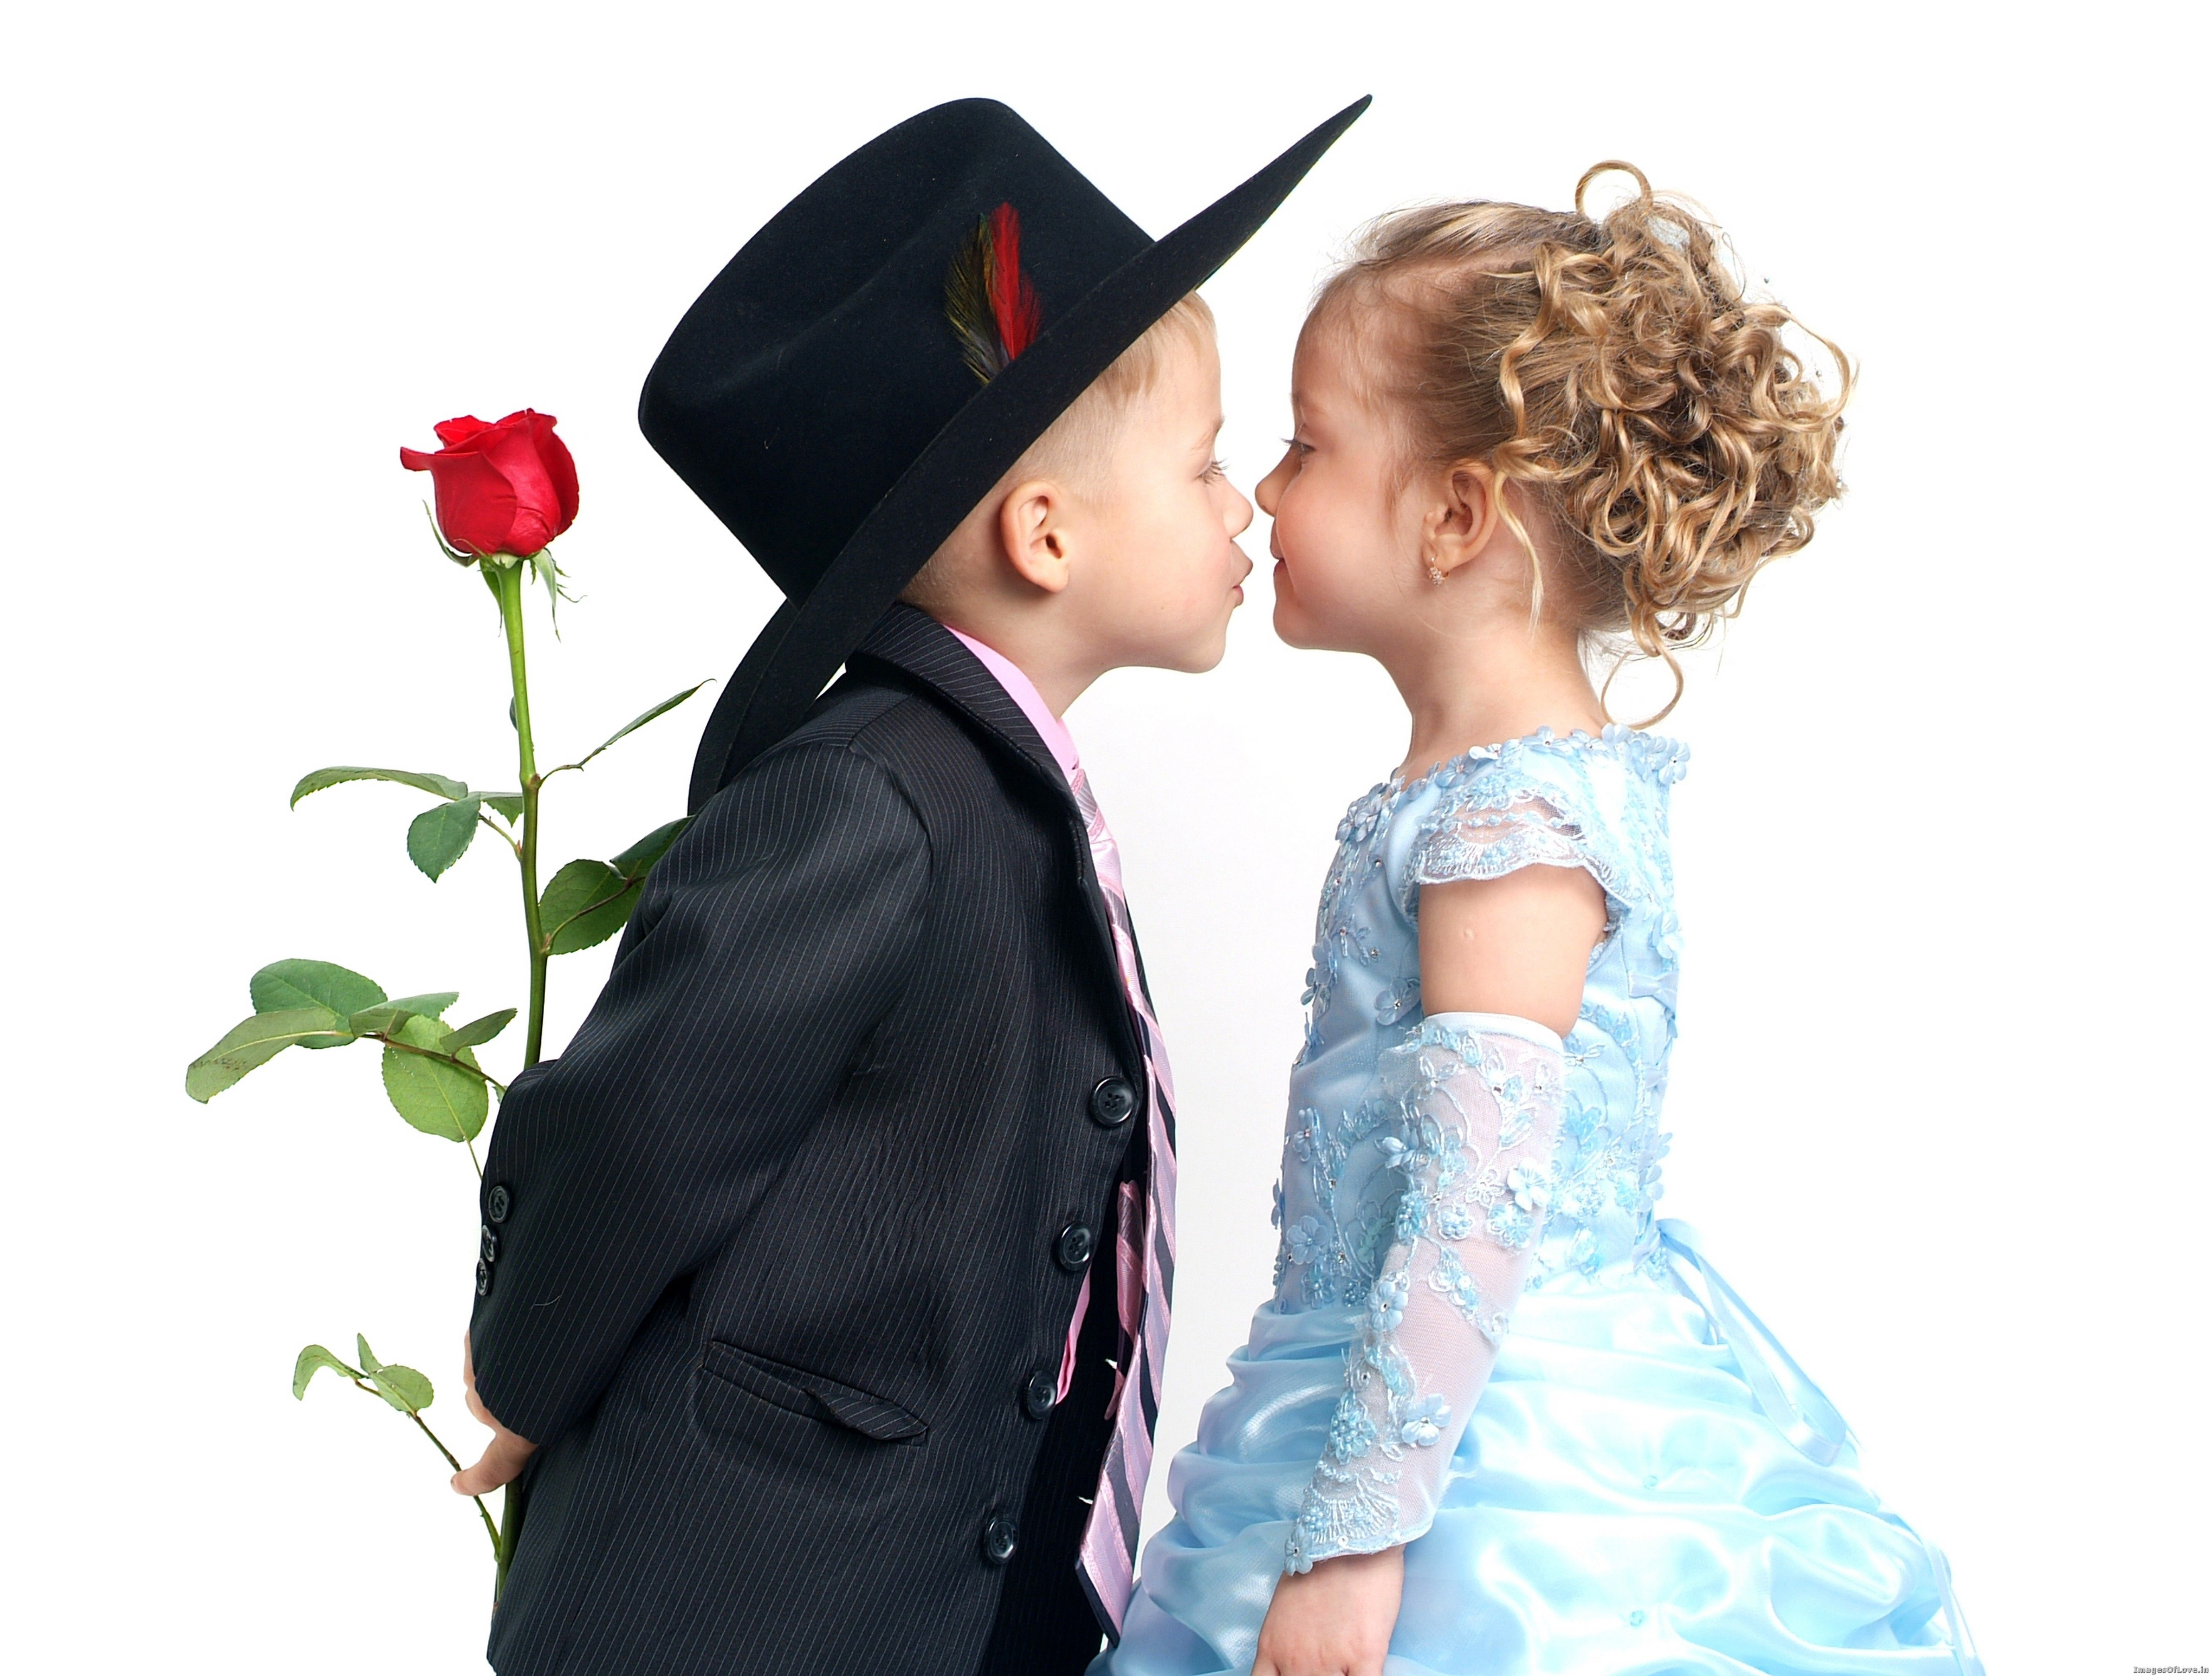 Cute Couples Kissing Wallpaper Cute Couple Of Happy Kiss Day